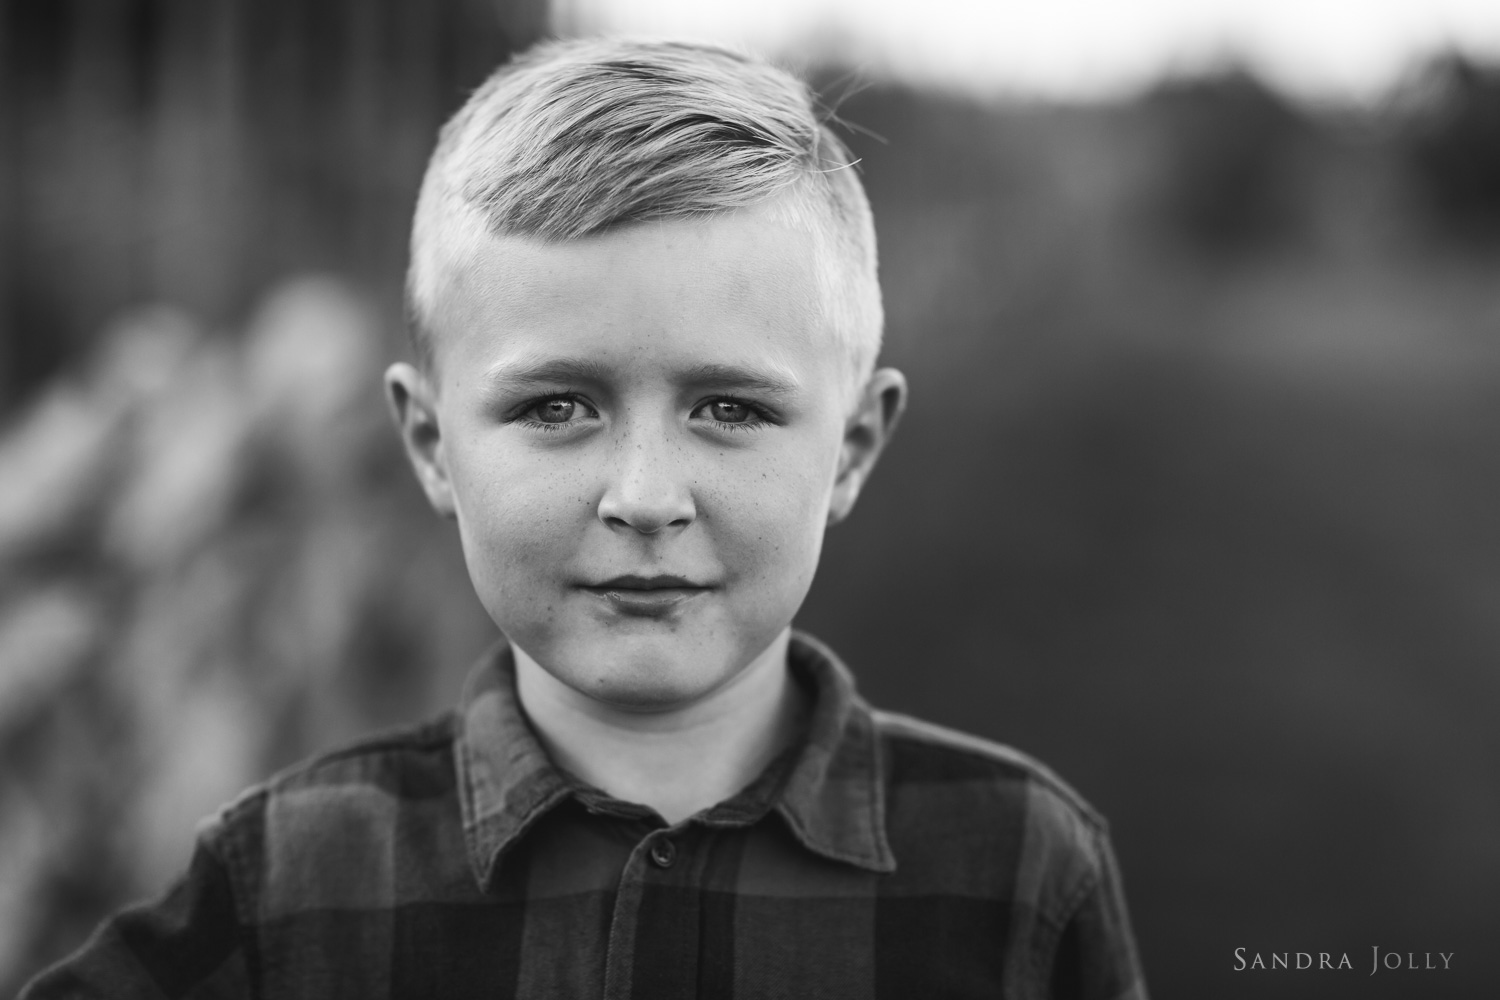 portrait-of-young-boy-stockholm-by-barnfotograf-sandra-jolly.jpg